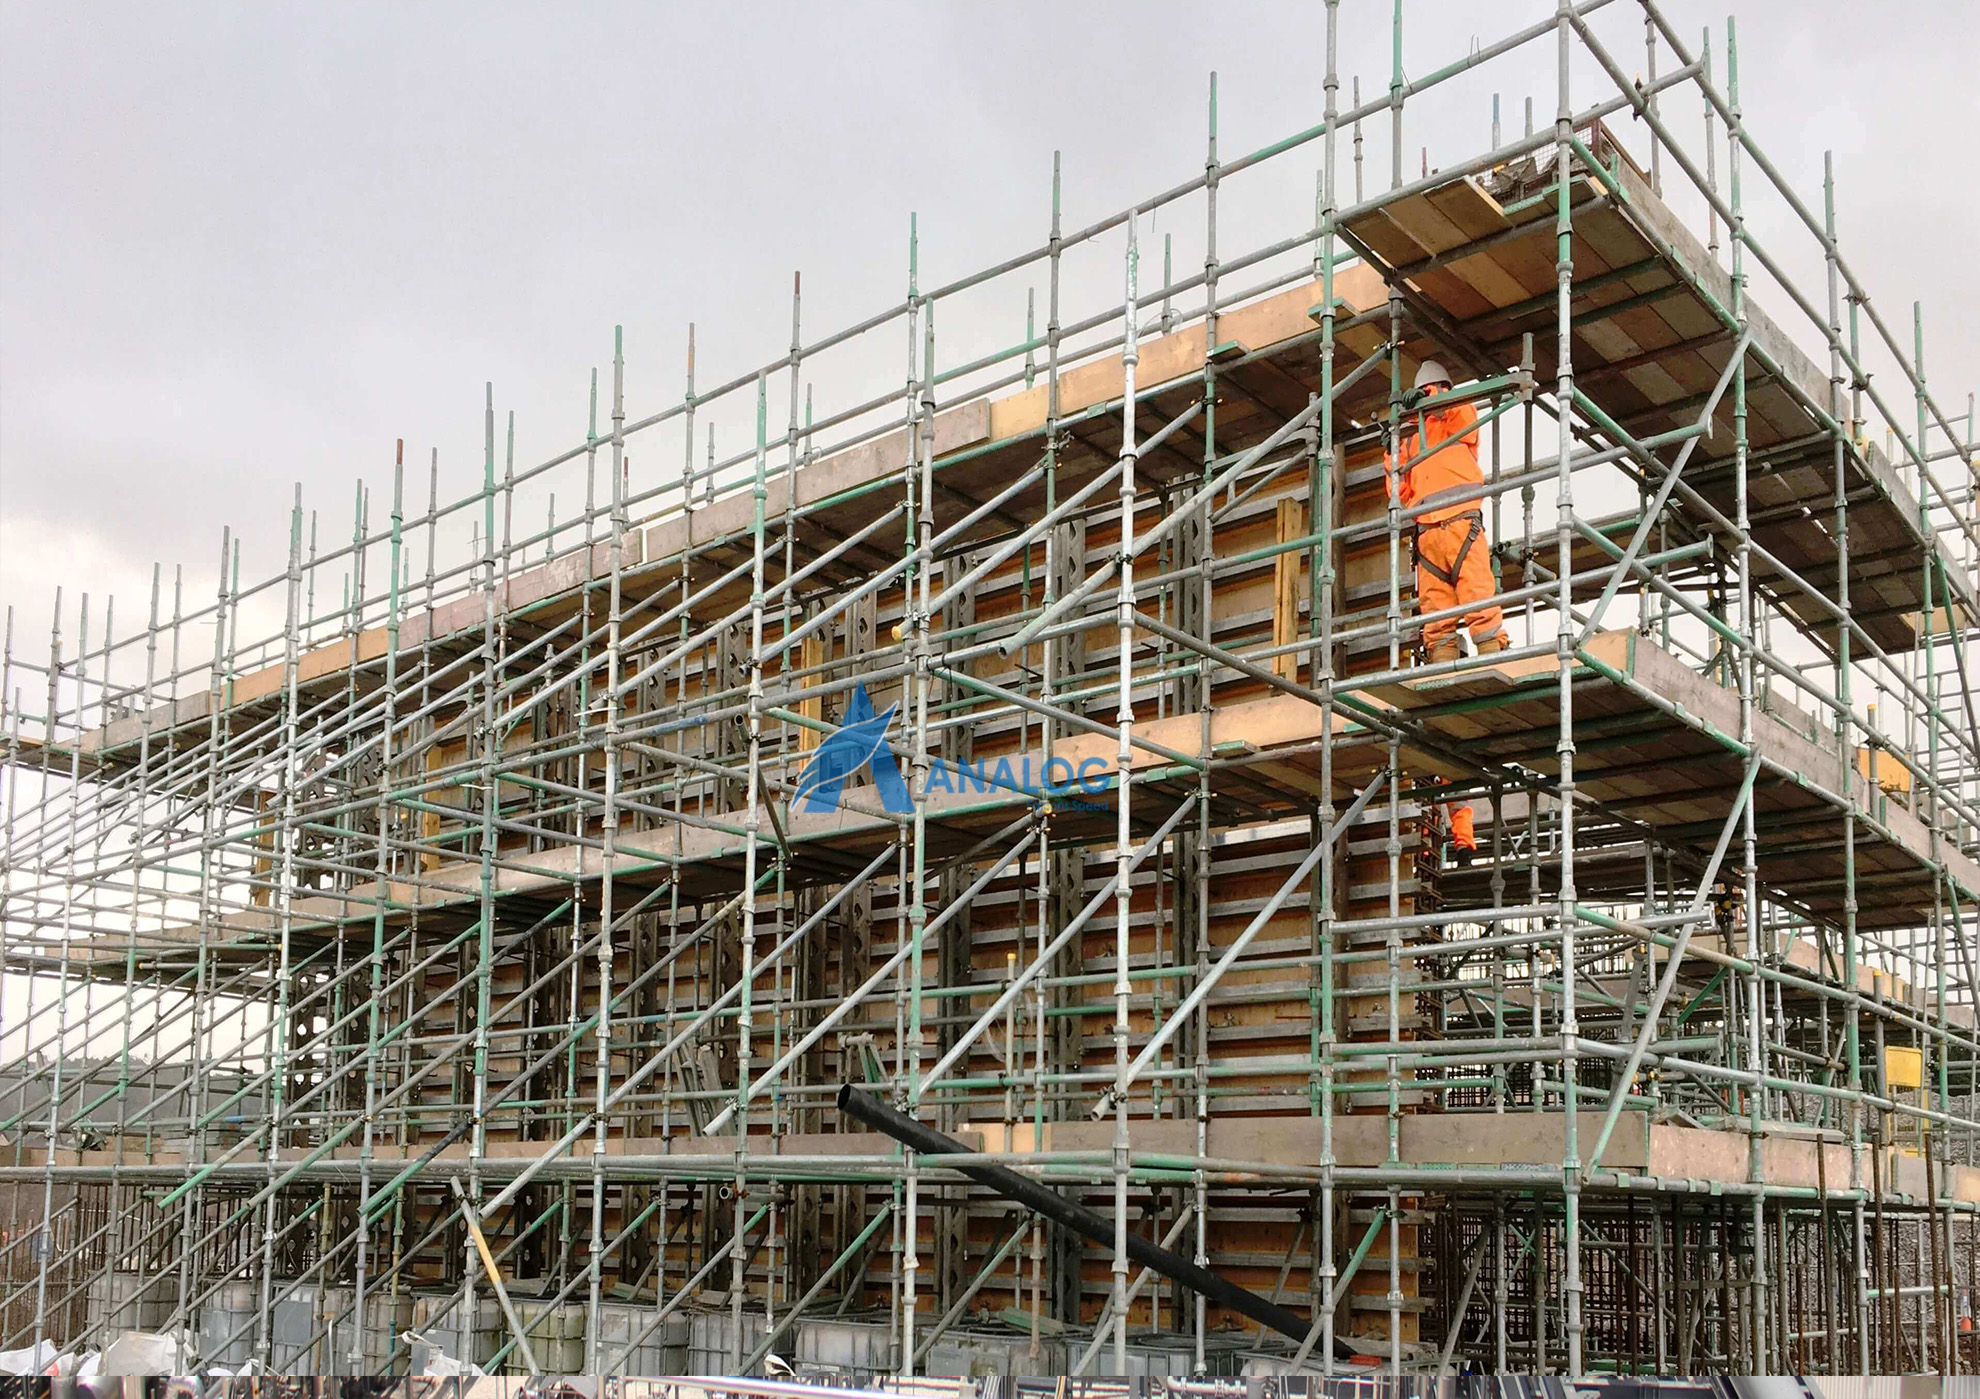 scaffolding for industrial repair and maintenance